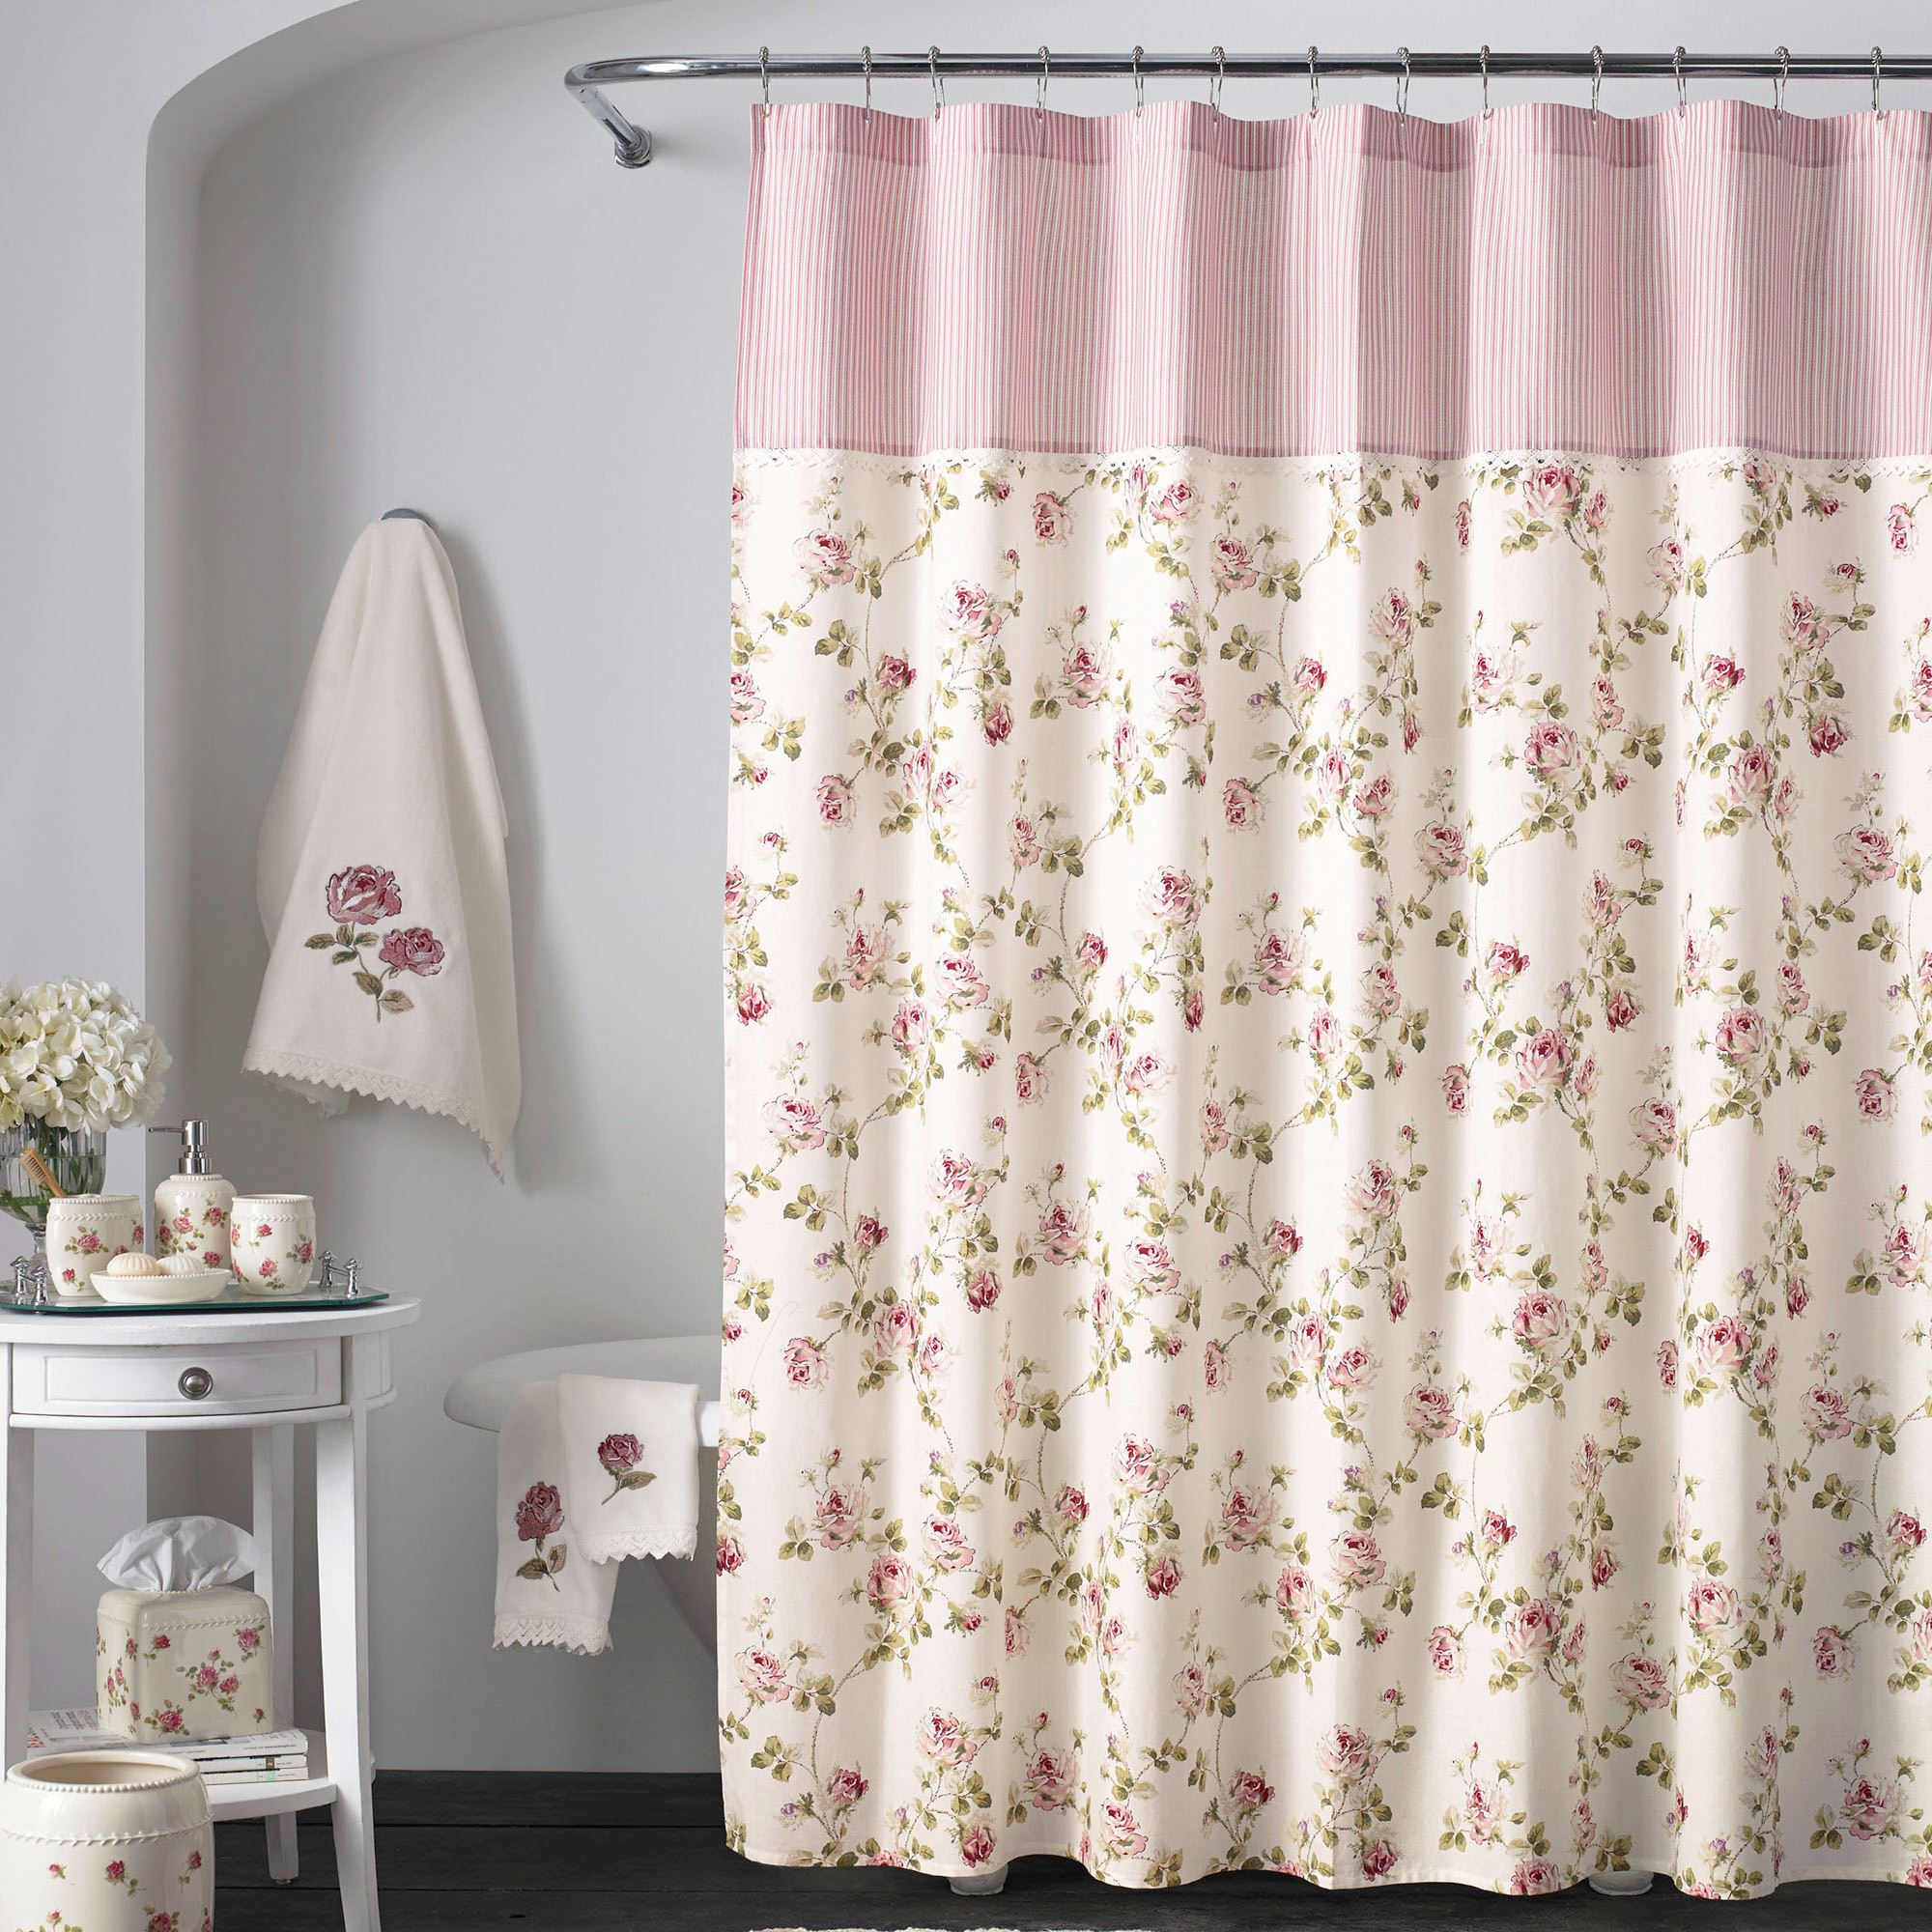 Rosalie Pink Floral Shower Curtain By Piper Wright